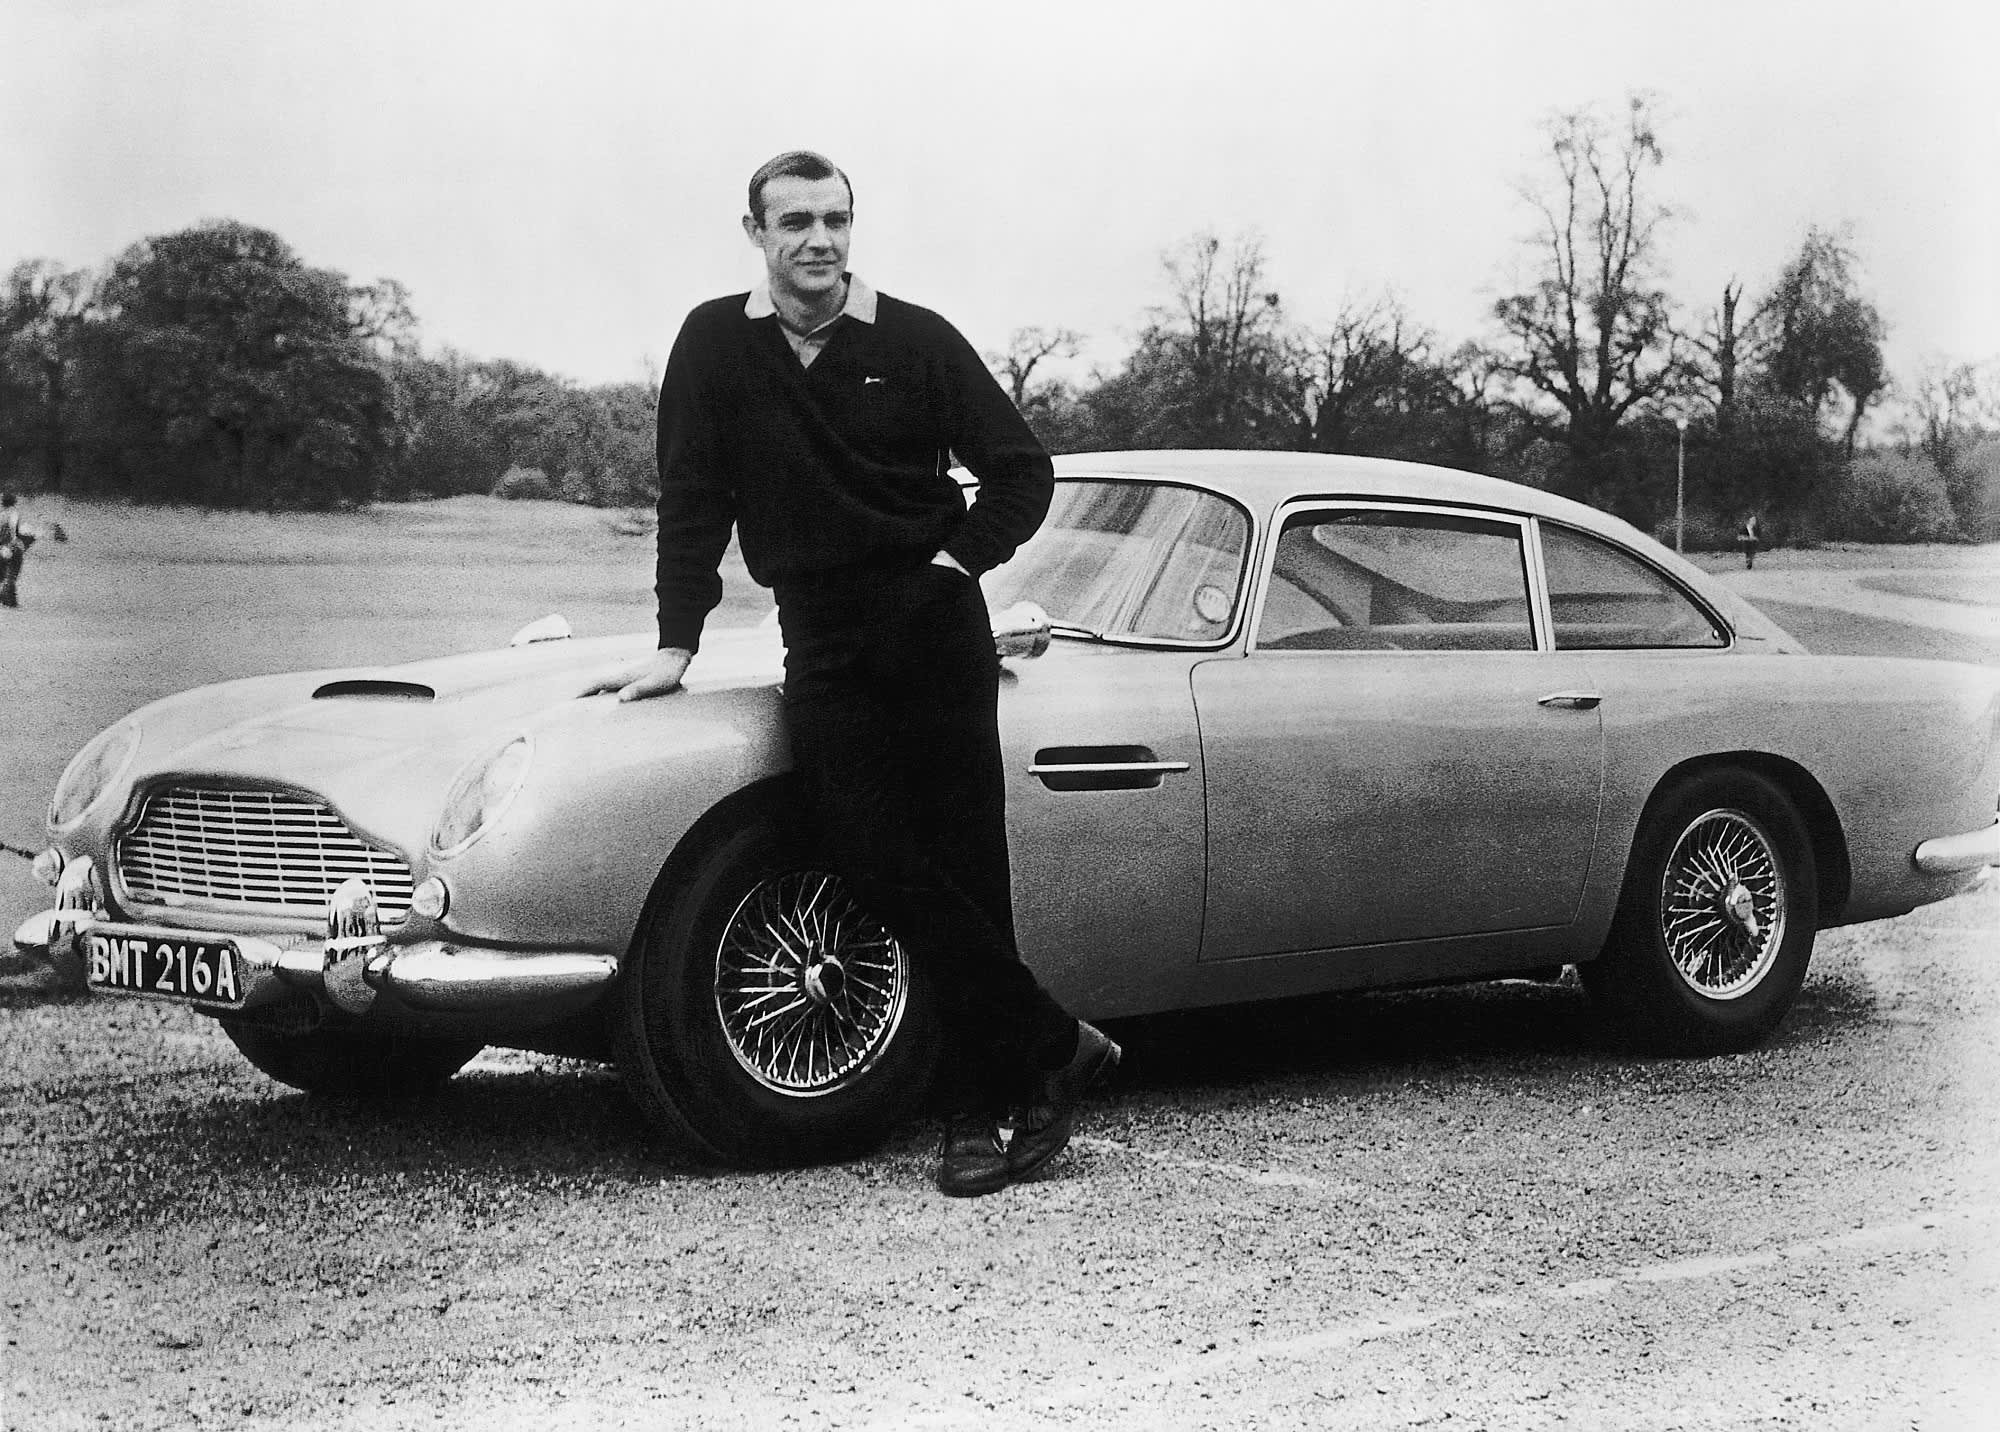 James Bond S Aston Martin Db5 Sells For 6 4 Million At Pebble Beach